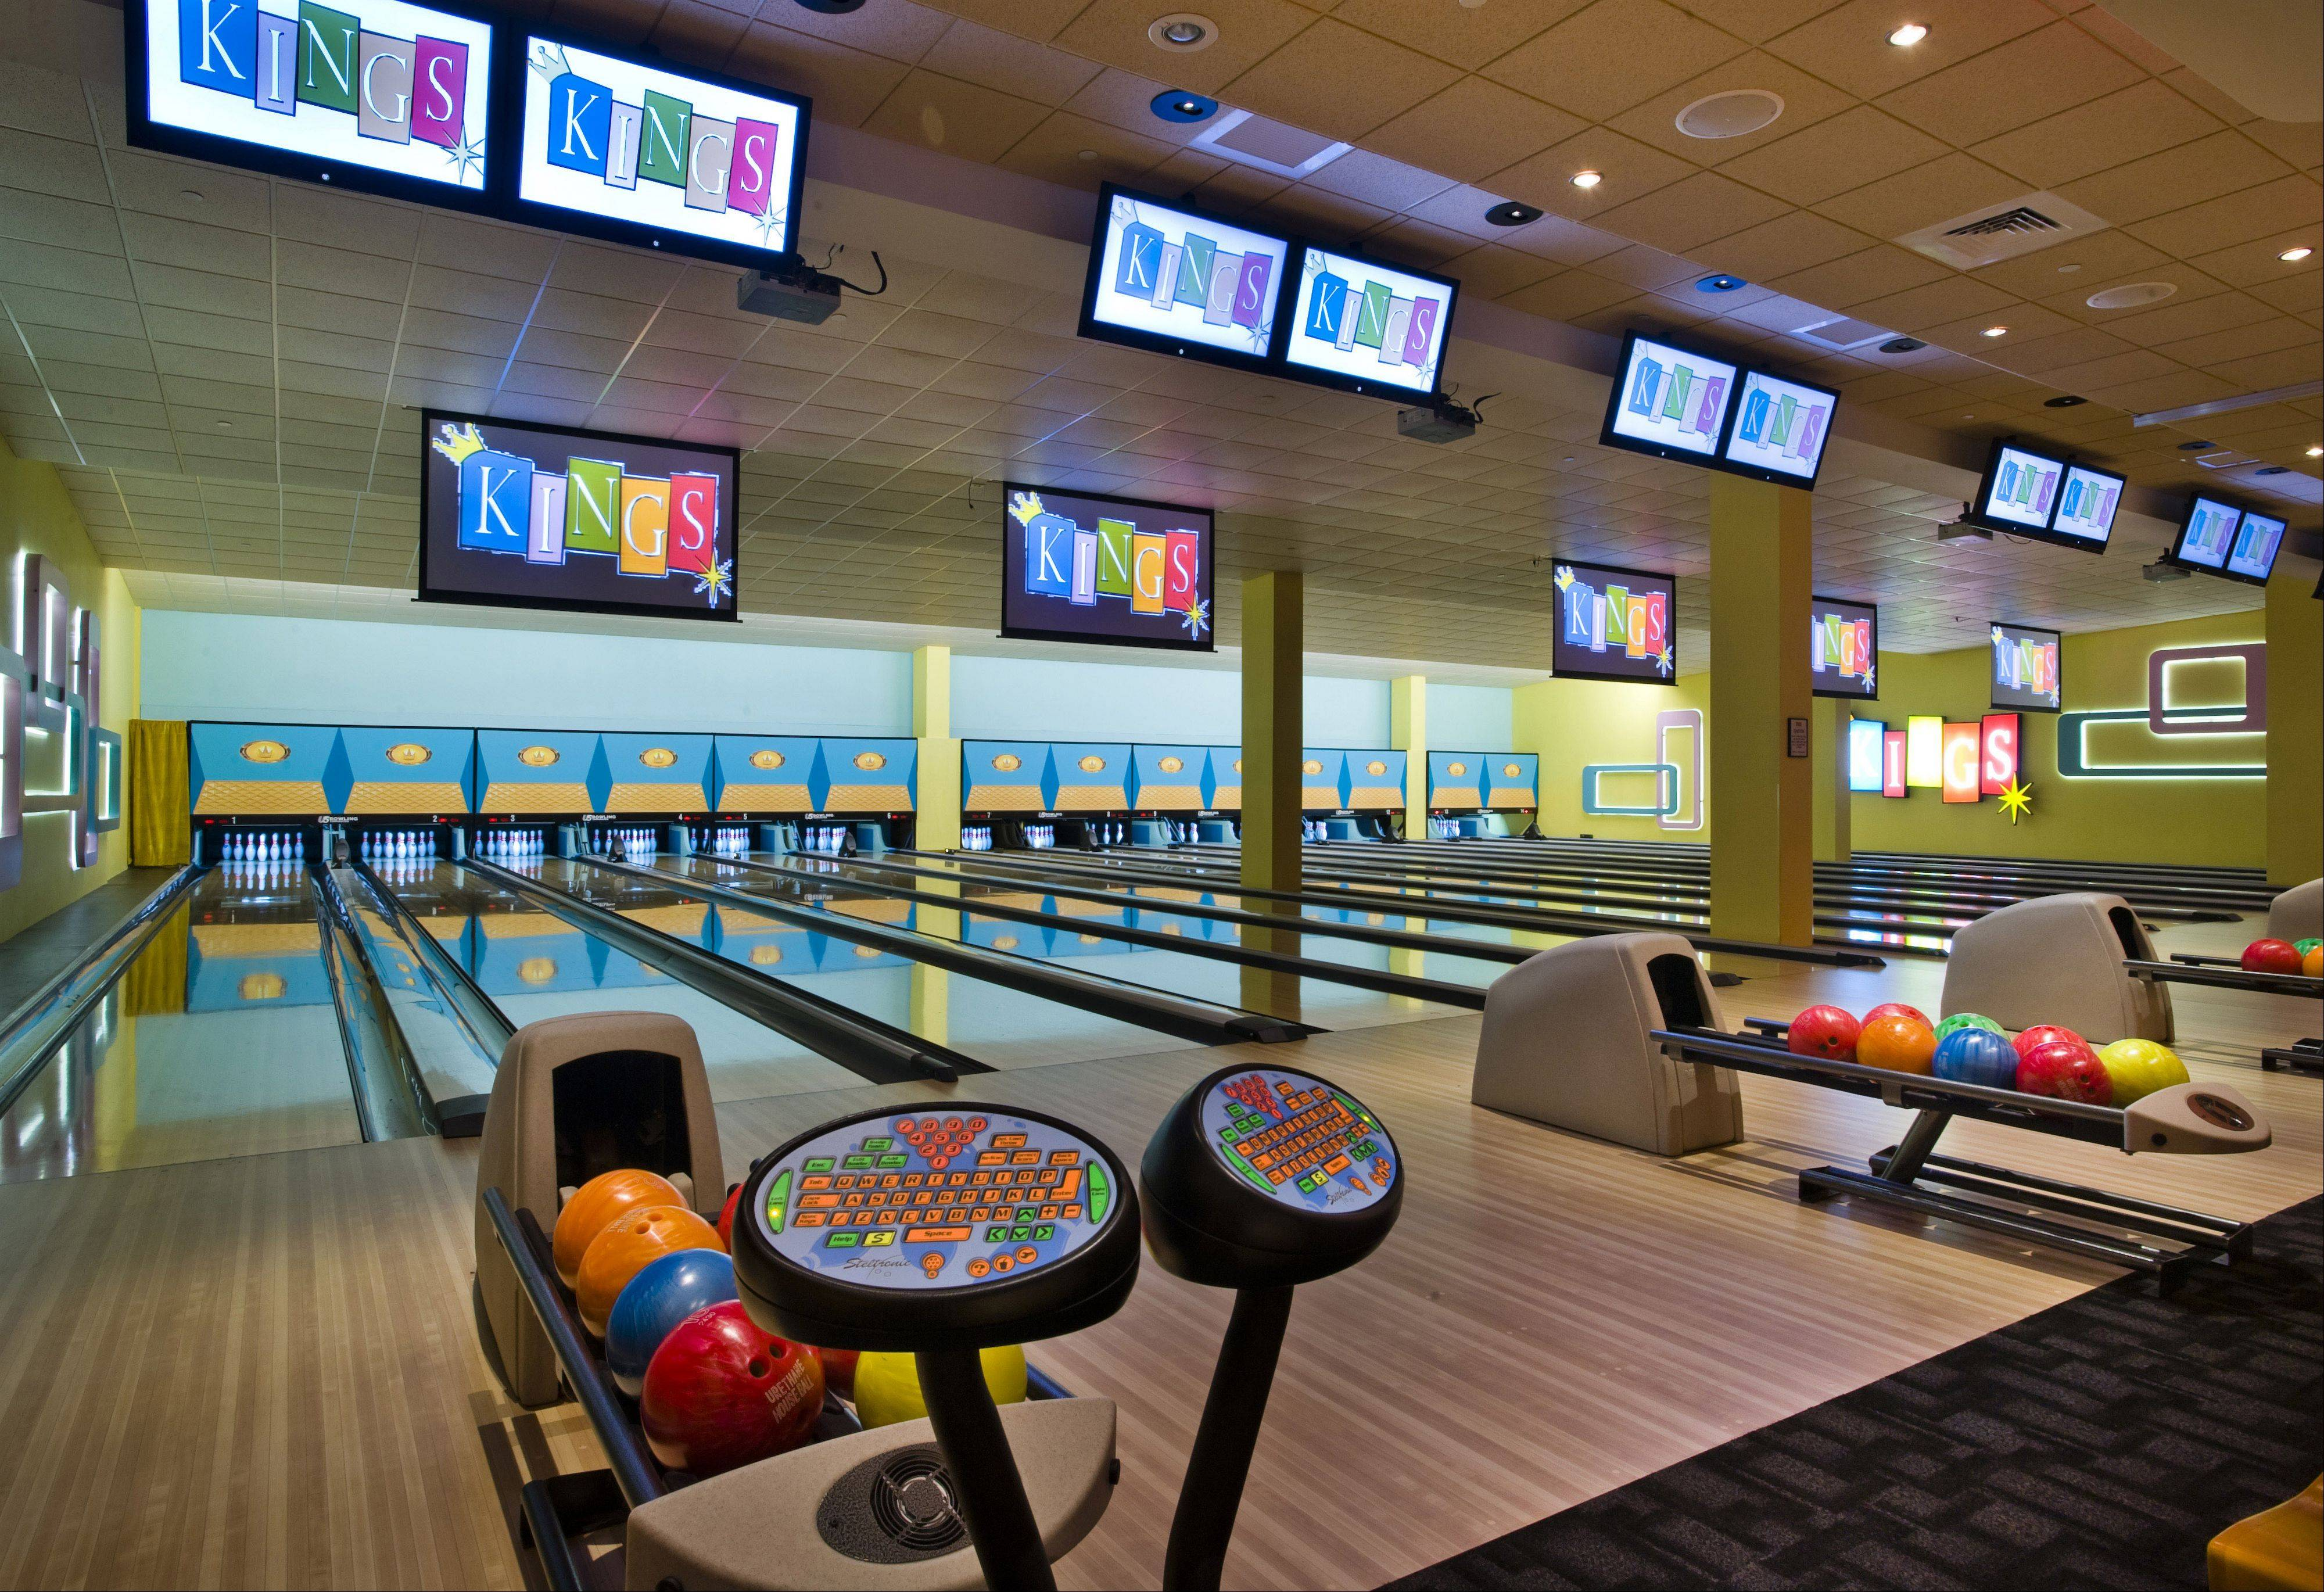 Kings Bowling due to open Wednesday in the new The Park at Rosemont entertainment district in Rosemont will resemble this location in Boston.